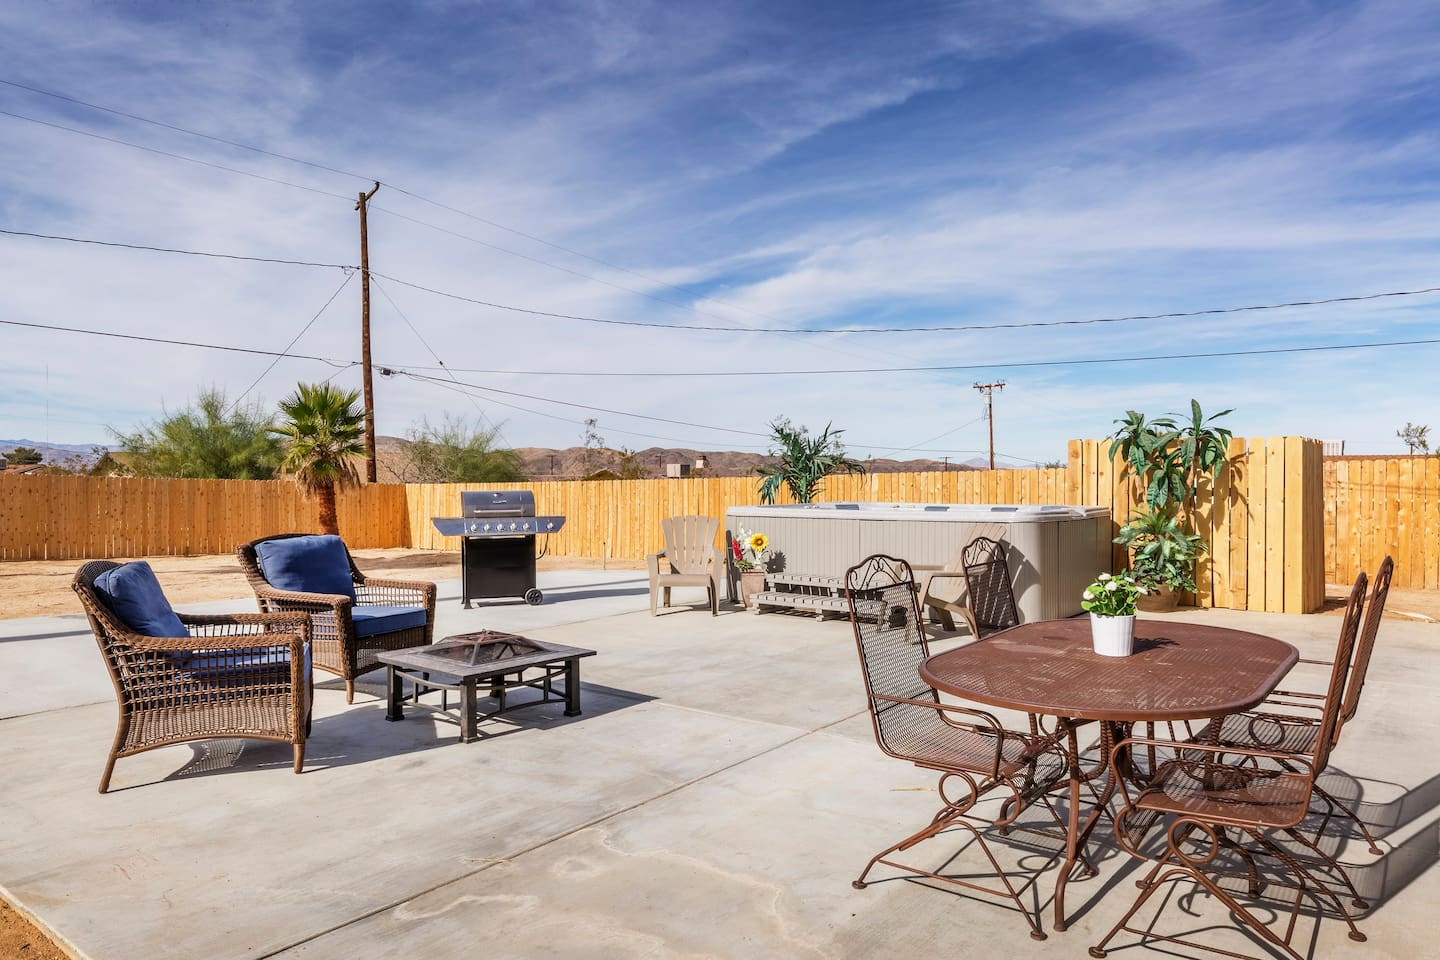 Relax by the fire pit while you cook on the barbecue. Or just unwind in your private hot tub and reconnect with nature.